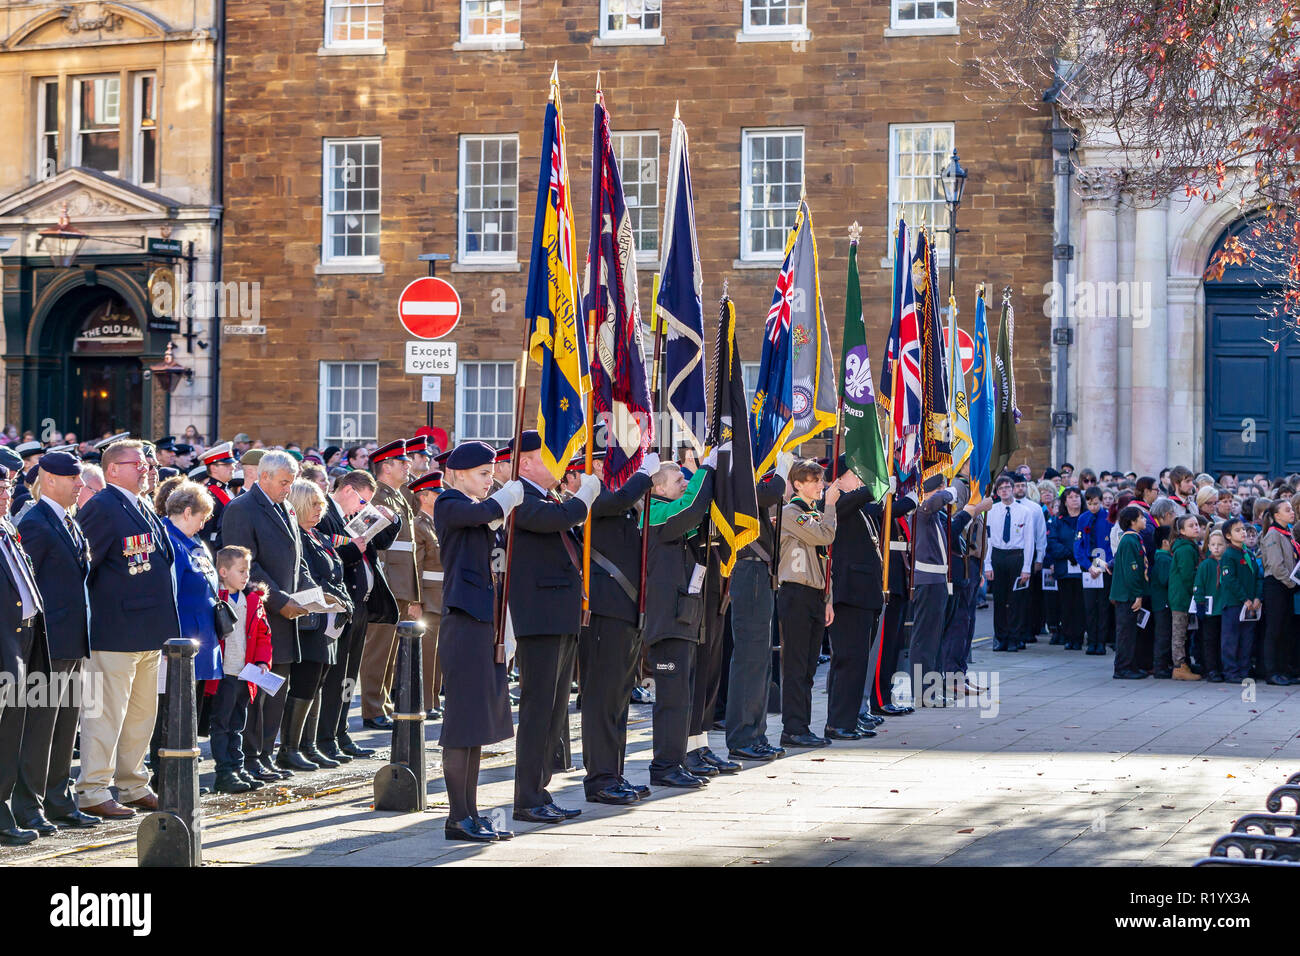 Northampton, UK. 11th November 2018. Northampton honours members of the armed forces who have lost their lives in the line of duty with a Remembrance  - Stock Image